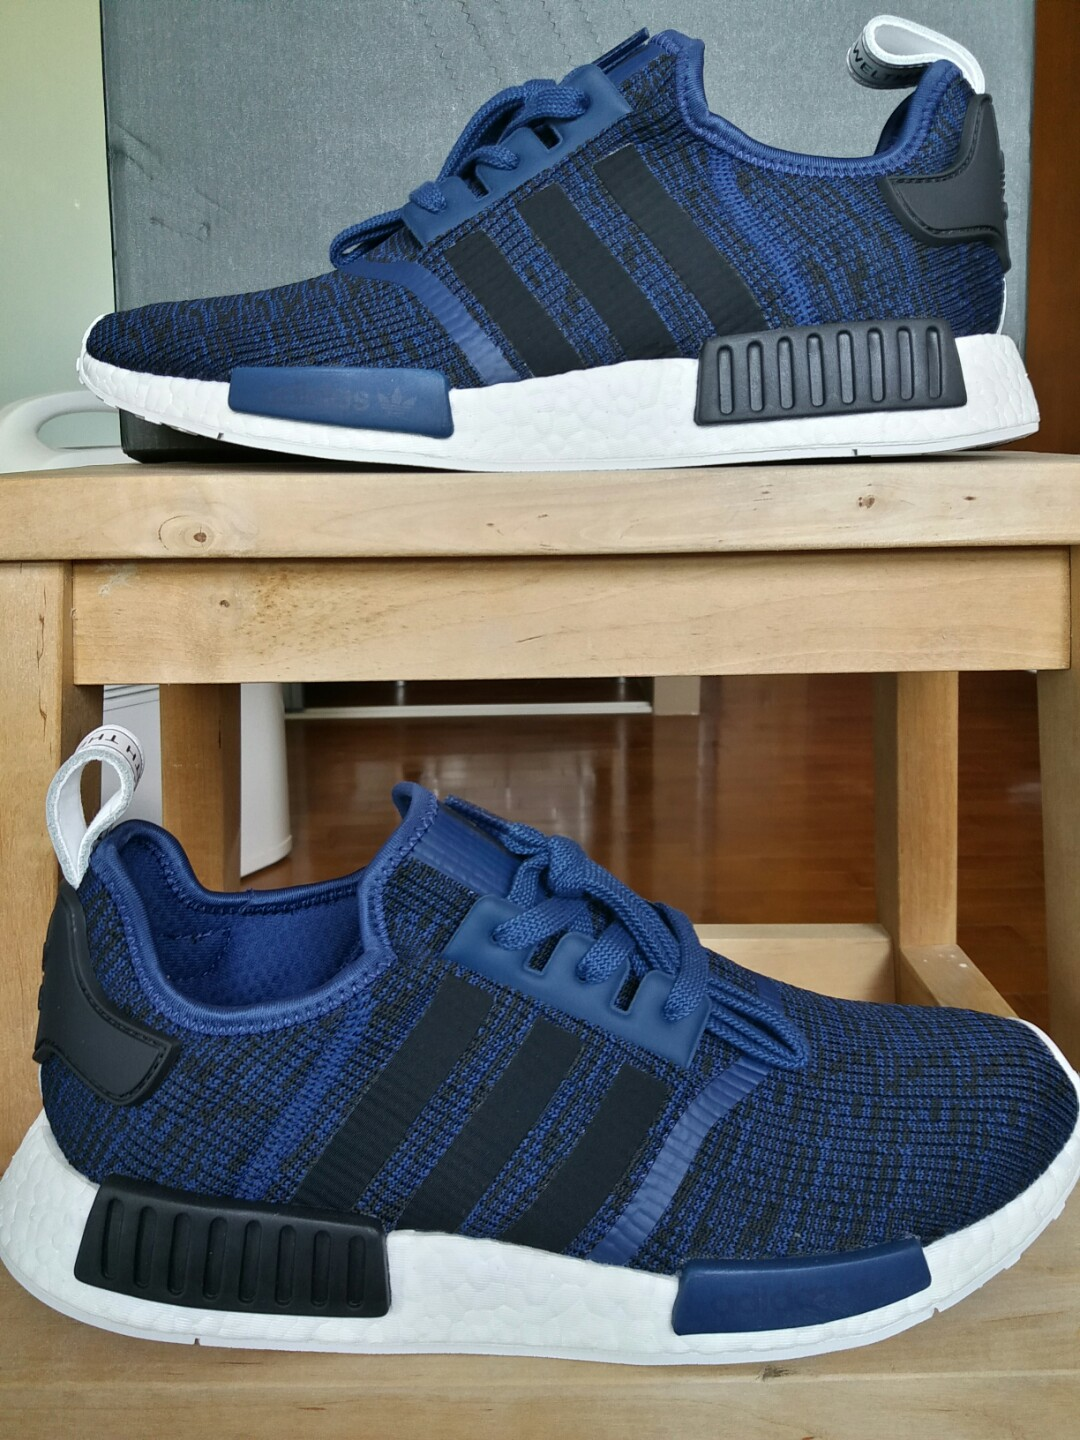 competitive price 56d09 bea81 **BNIB** ADIDAS NMD RUNNER R1 'MYSTERY BLUE' Core Black / Collegiate Blue  US size 12.5